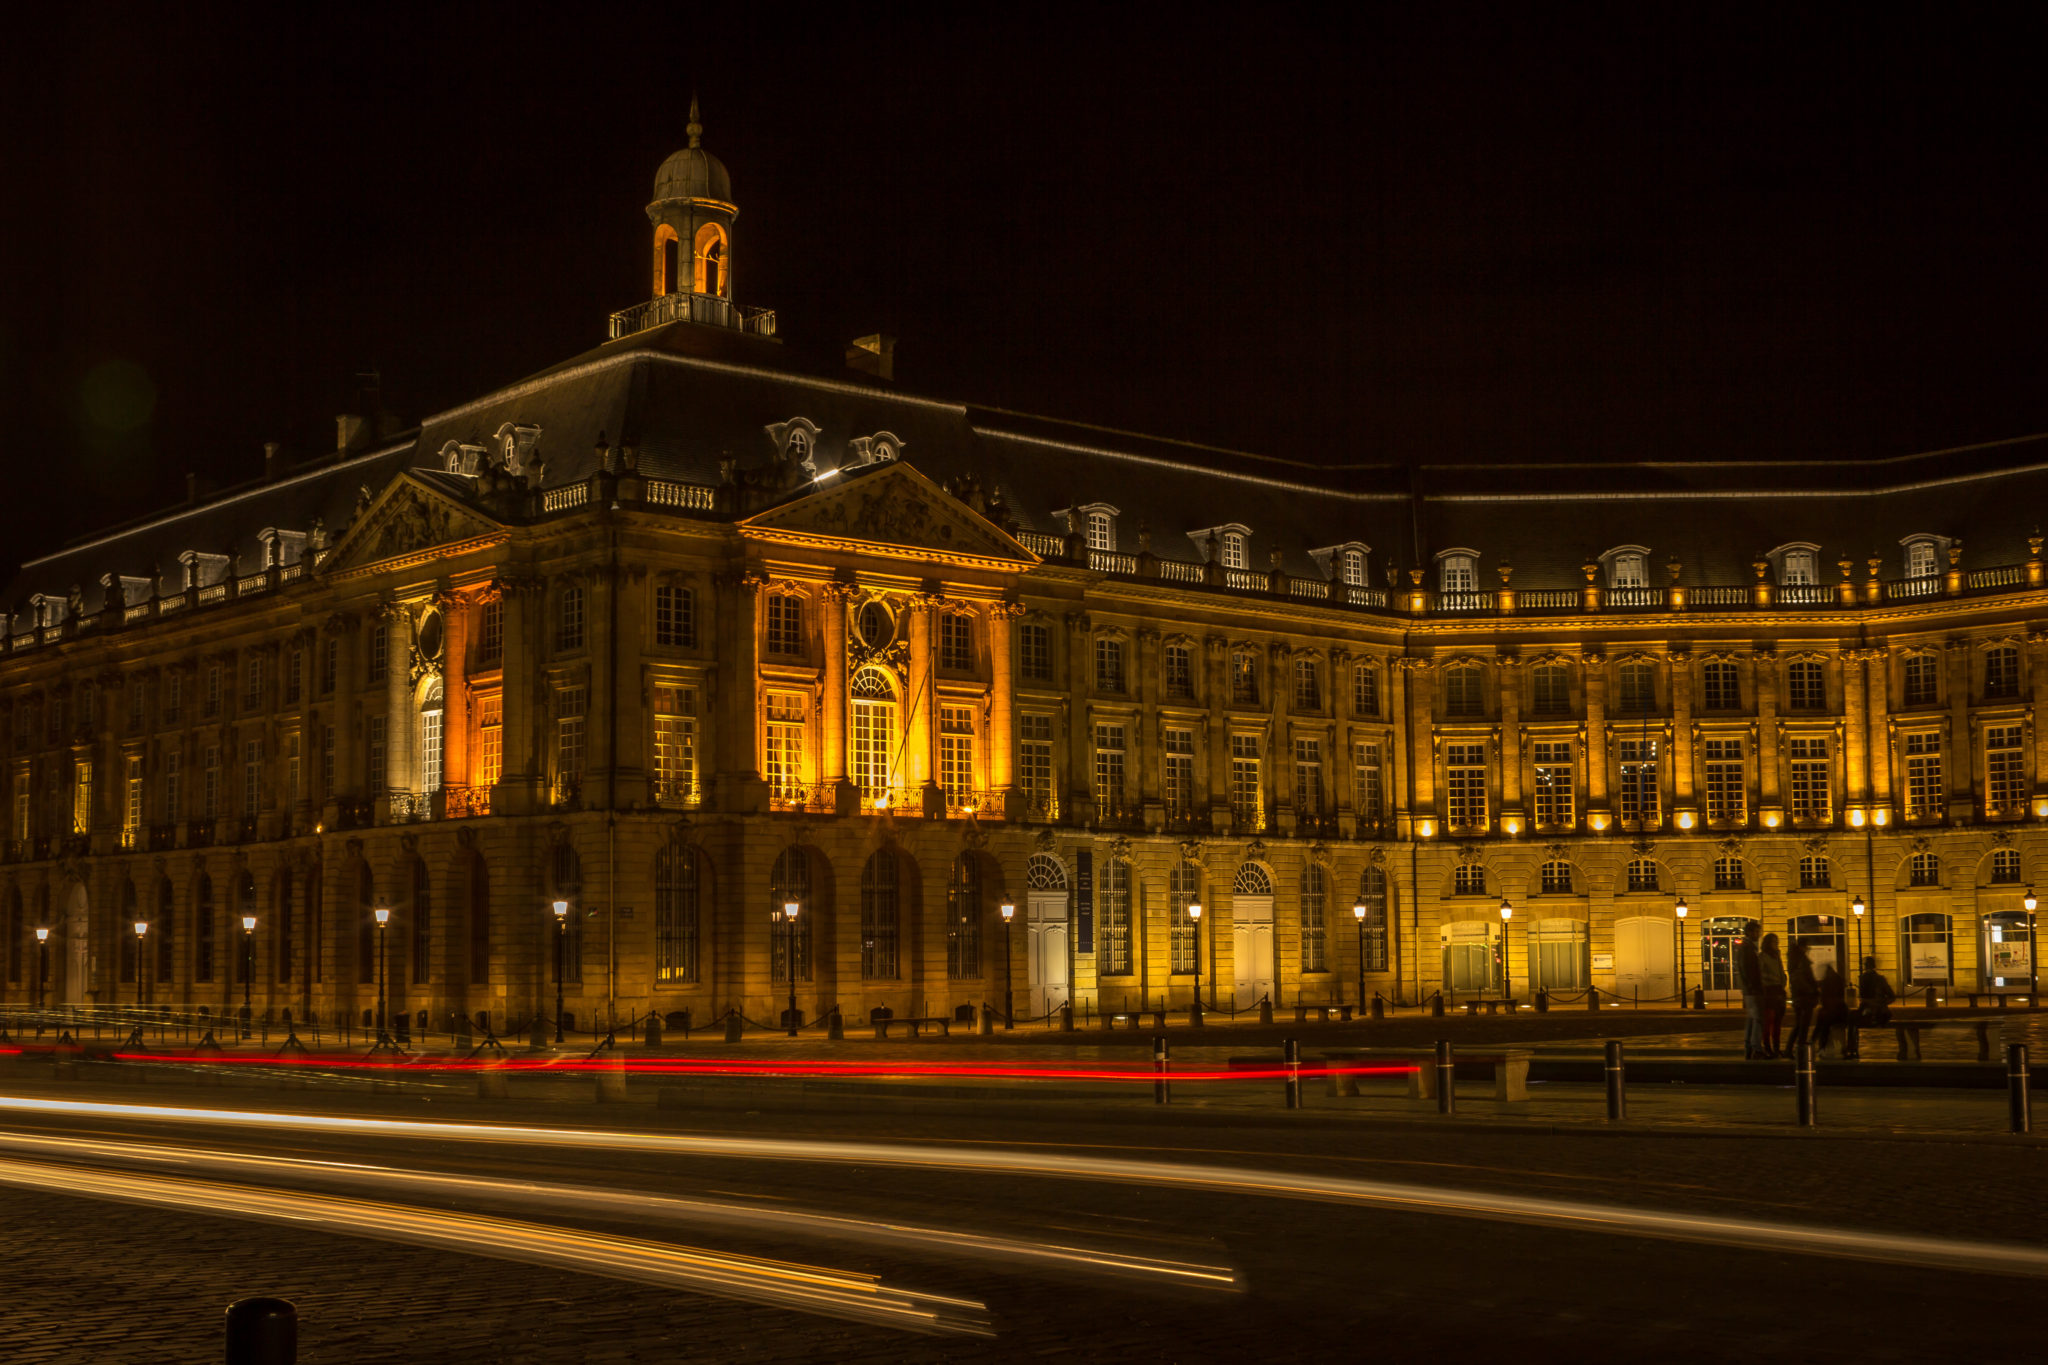 Night photo of Place de la Bourse in Bordeaux, France. Illuminated building. Red and yellow car lights in the foreground because of the long exposure.